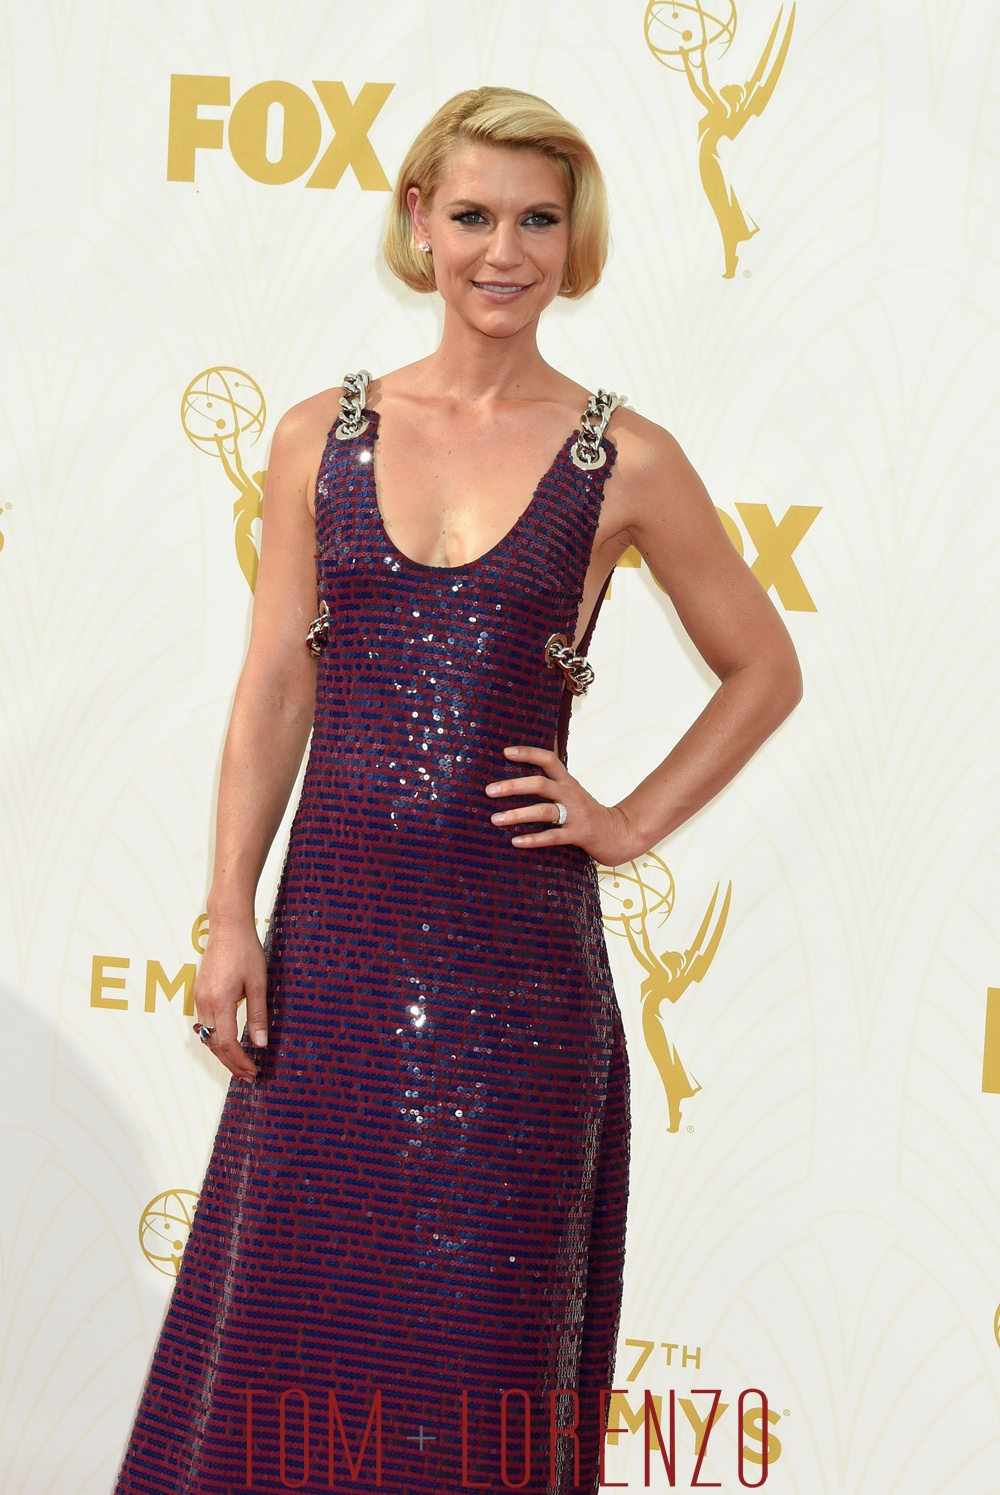 Claire-Danes-2015-Emmy-Awards-Red-Carpet-Fashion-Prada-Tom-Lorenzo-Site-TLO (1)